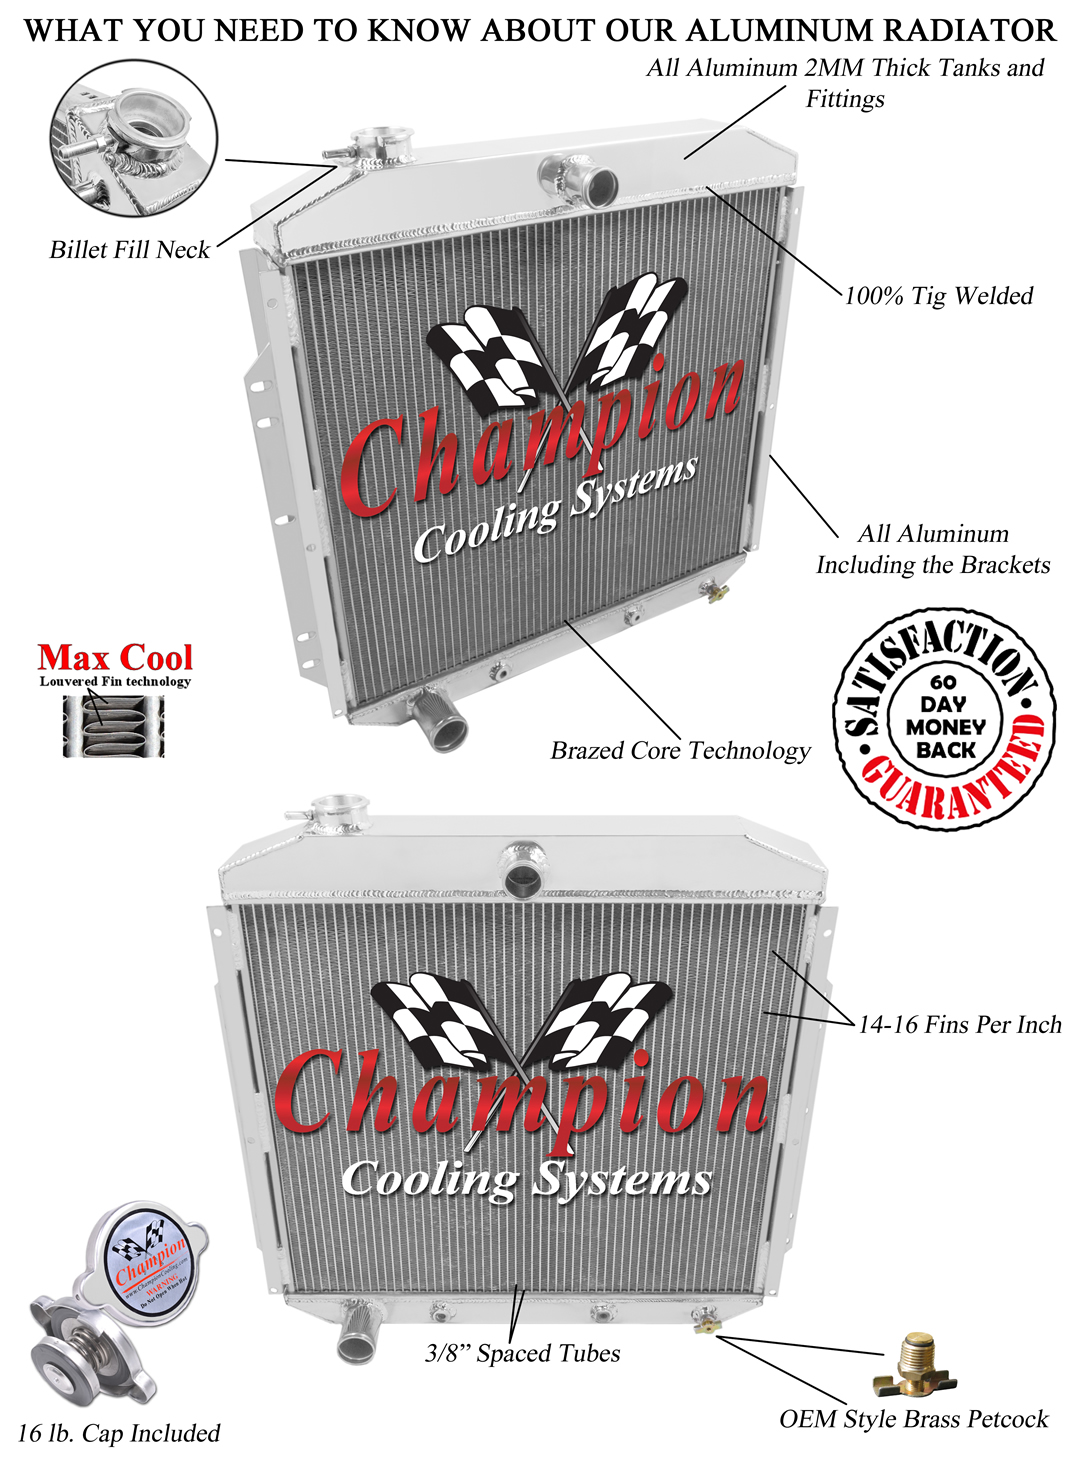 https://www.championcooling.com/photos/Photos%20White/Without%20Fans/5356/1956%20Ford%20Truck%20Radiator%20Diagram.jpg